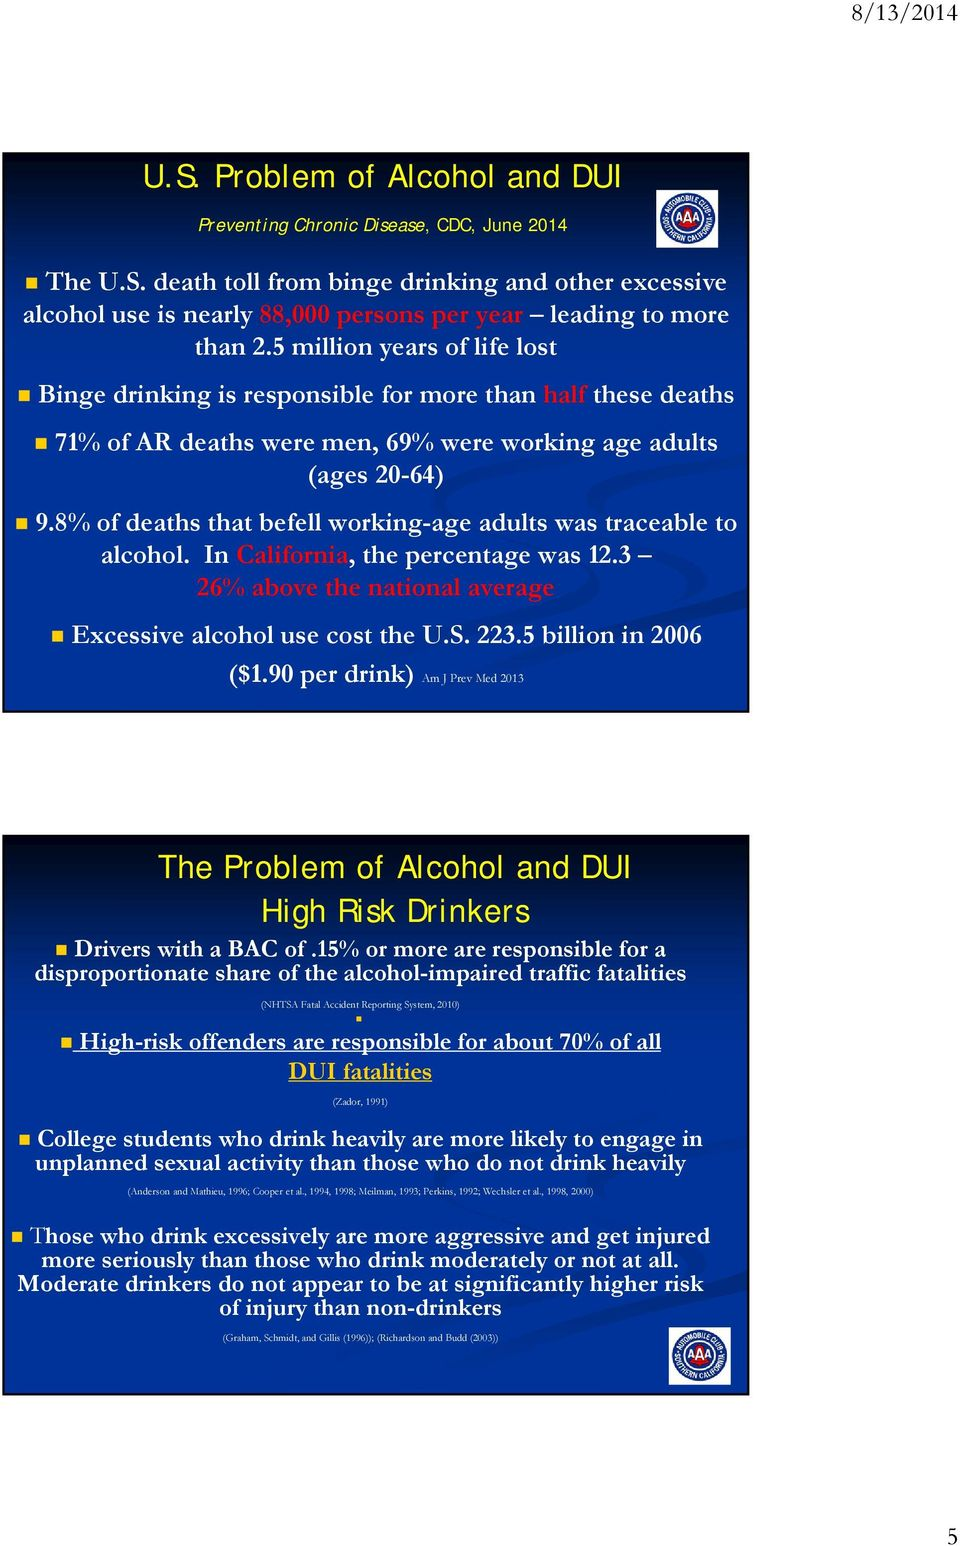 8% of deaths that befell working-age adults was traceable to alcohol. In California, the percentage was 12.3 26% above the national average Excessive alcohol use cost the U.S. 223.